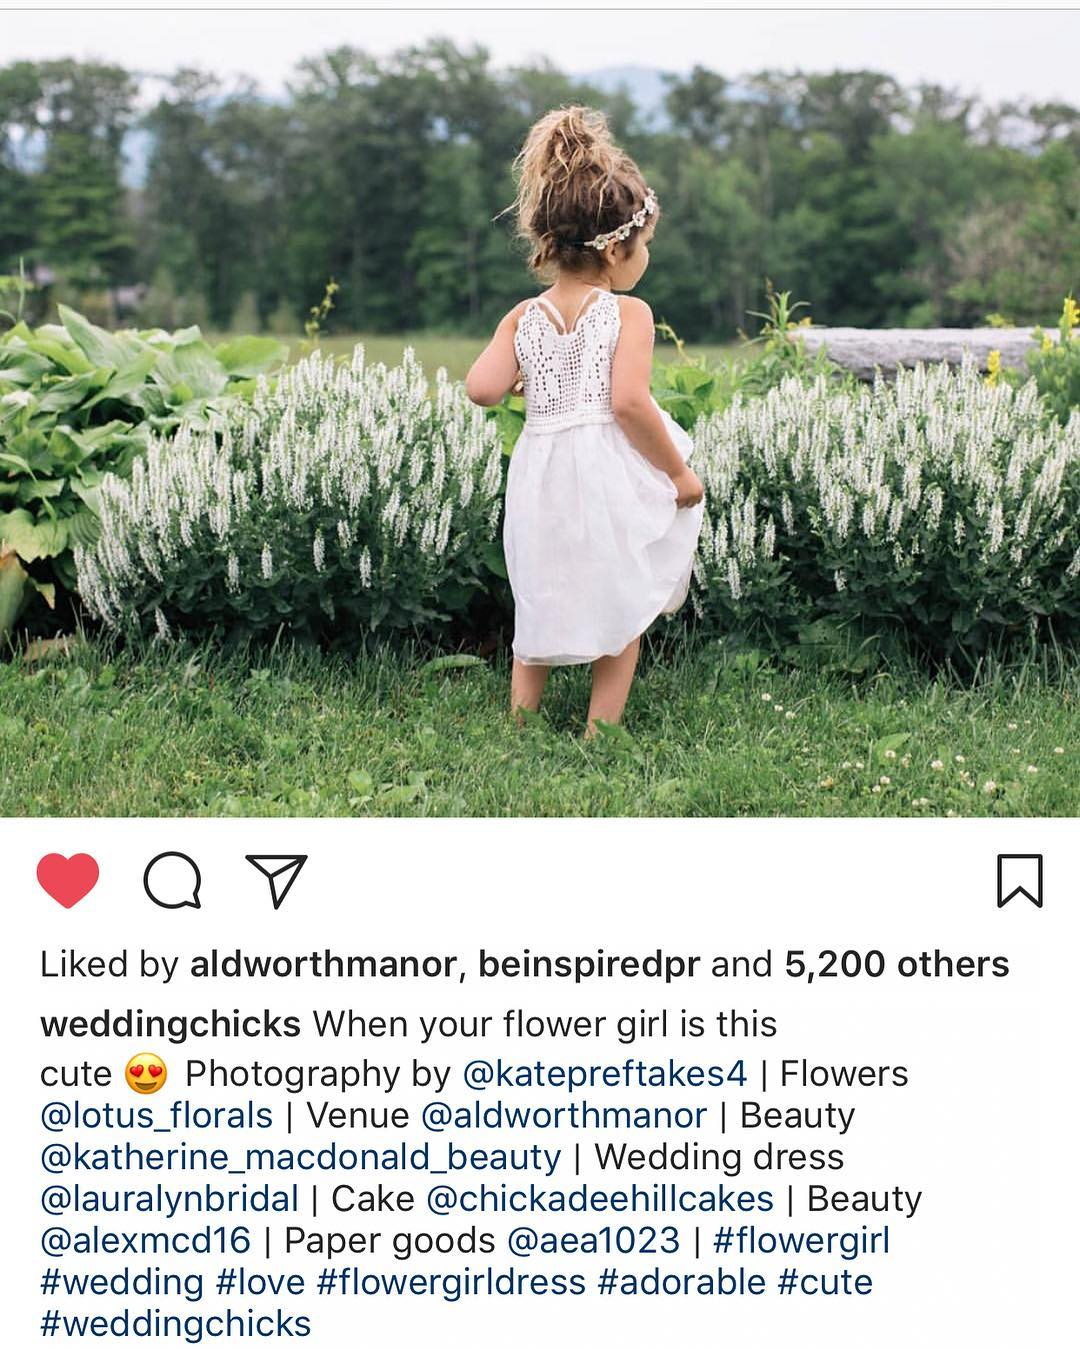 Our amazing little flower girl Patience getting mad love on @weddingchicks in this pic by @katepreftakes4 from our @aldworthmanor shoot❤❤❤